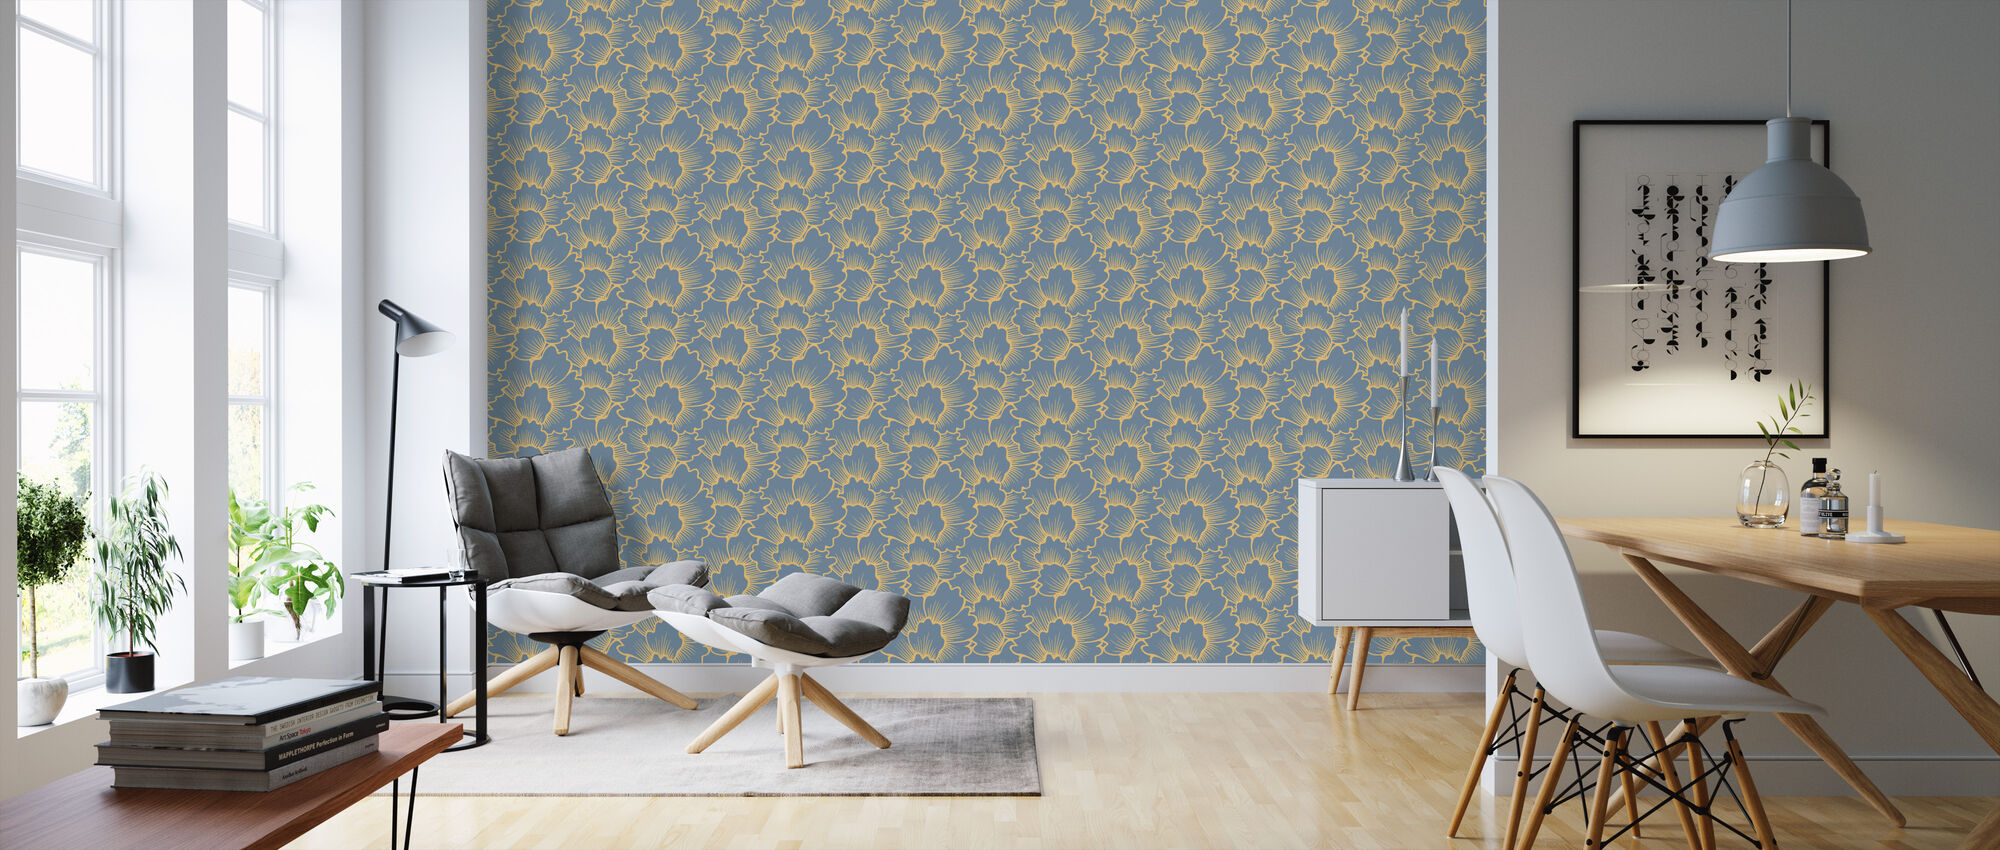 Mostly Coral Yellow on Blue - Wallpaper - Living Room